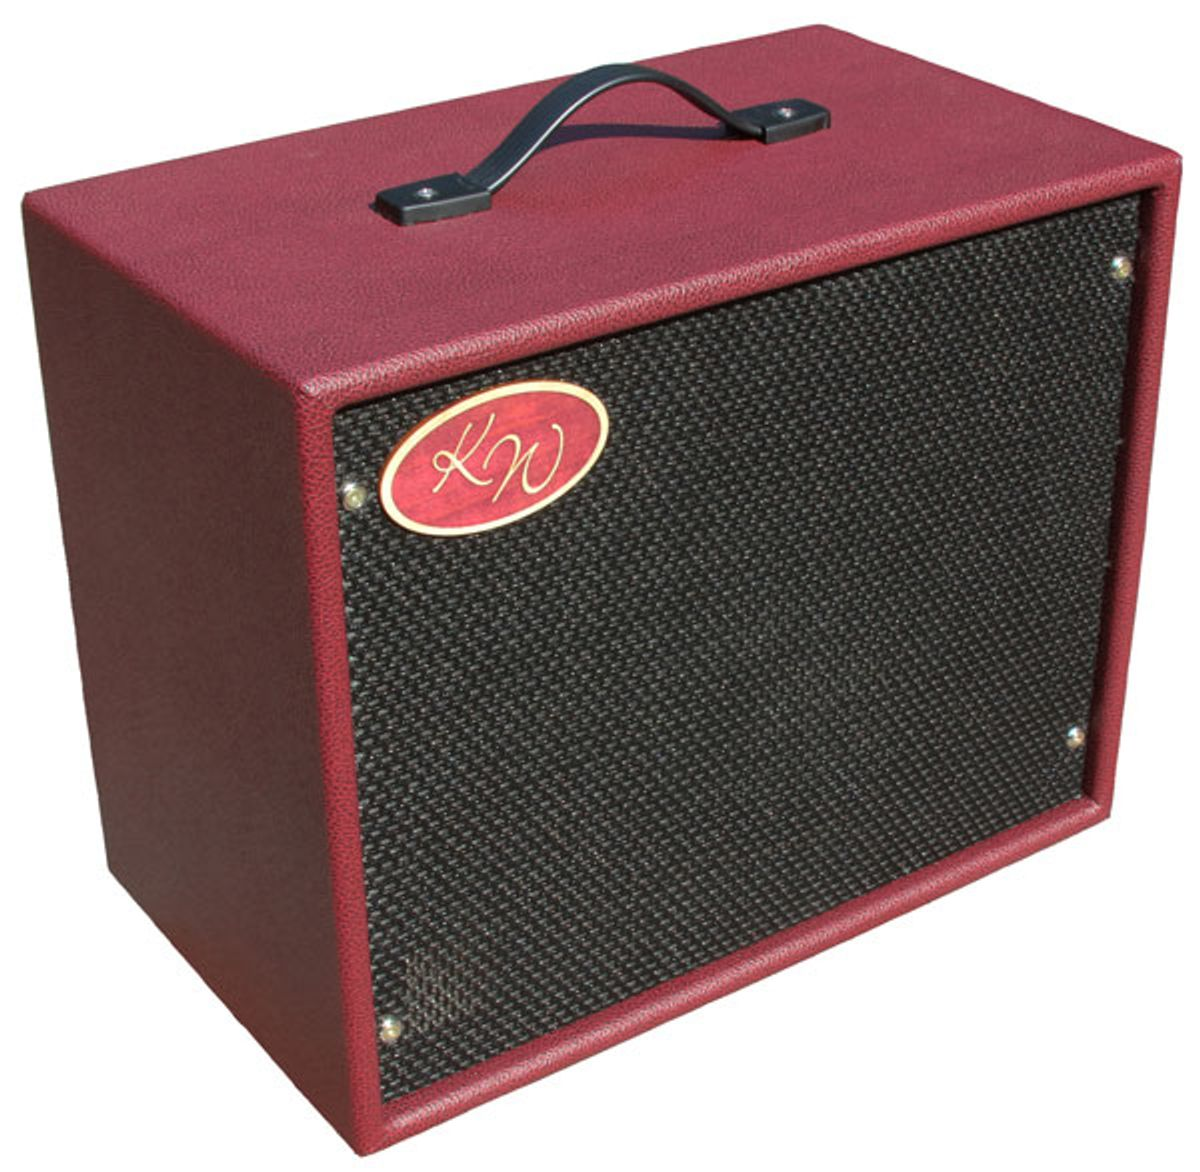 KW Cabs Announces the WA-1 and Hybrid Series